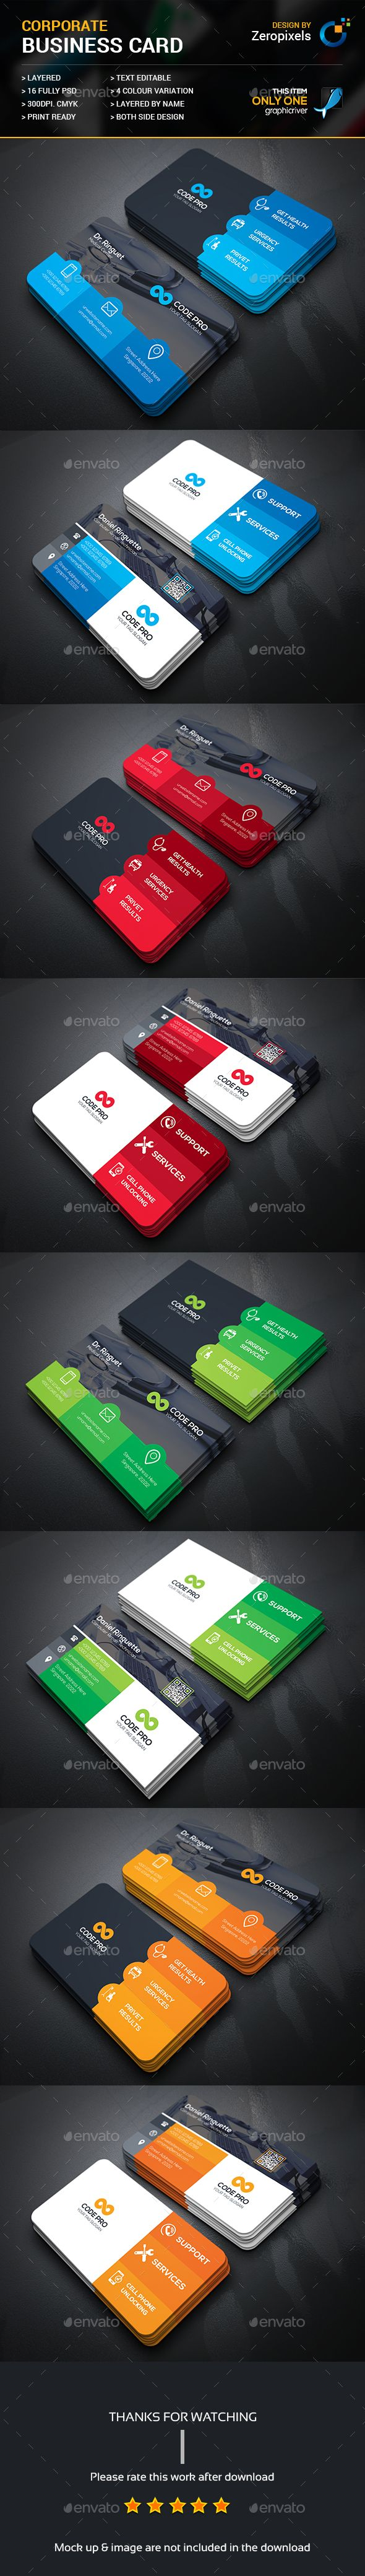 Doctor & Computer Service Business Card Template PSD. Download here: https://graphicriver.net/item/doctor-computer-service-business-card-bundle/17494516?ref=ksioks